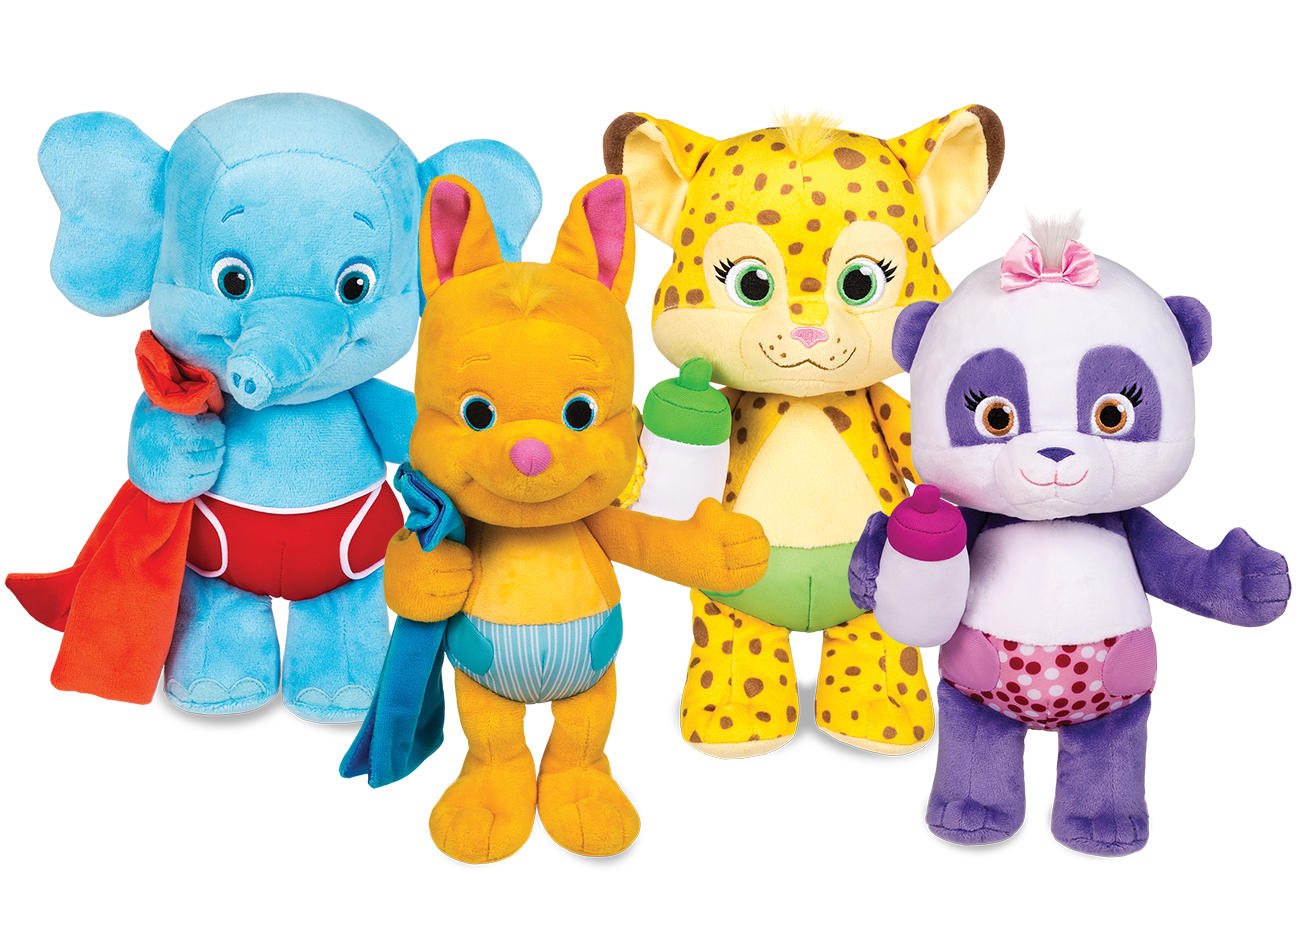 word snuggle play babies plush toys